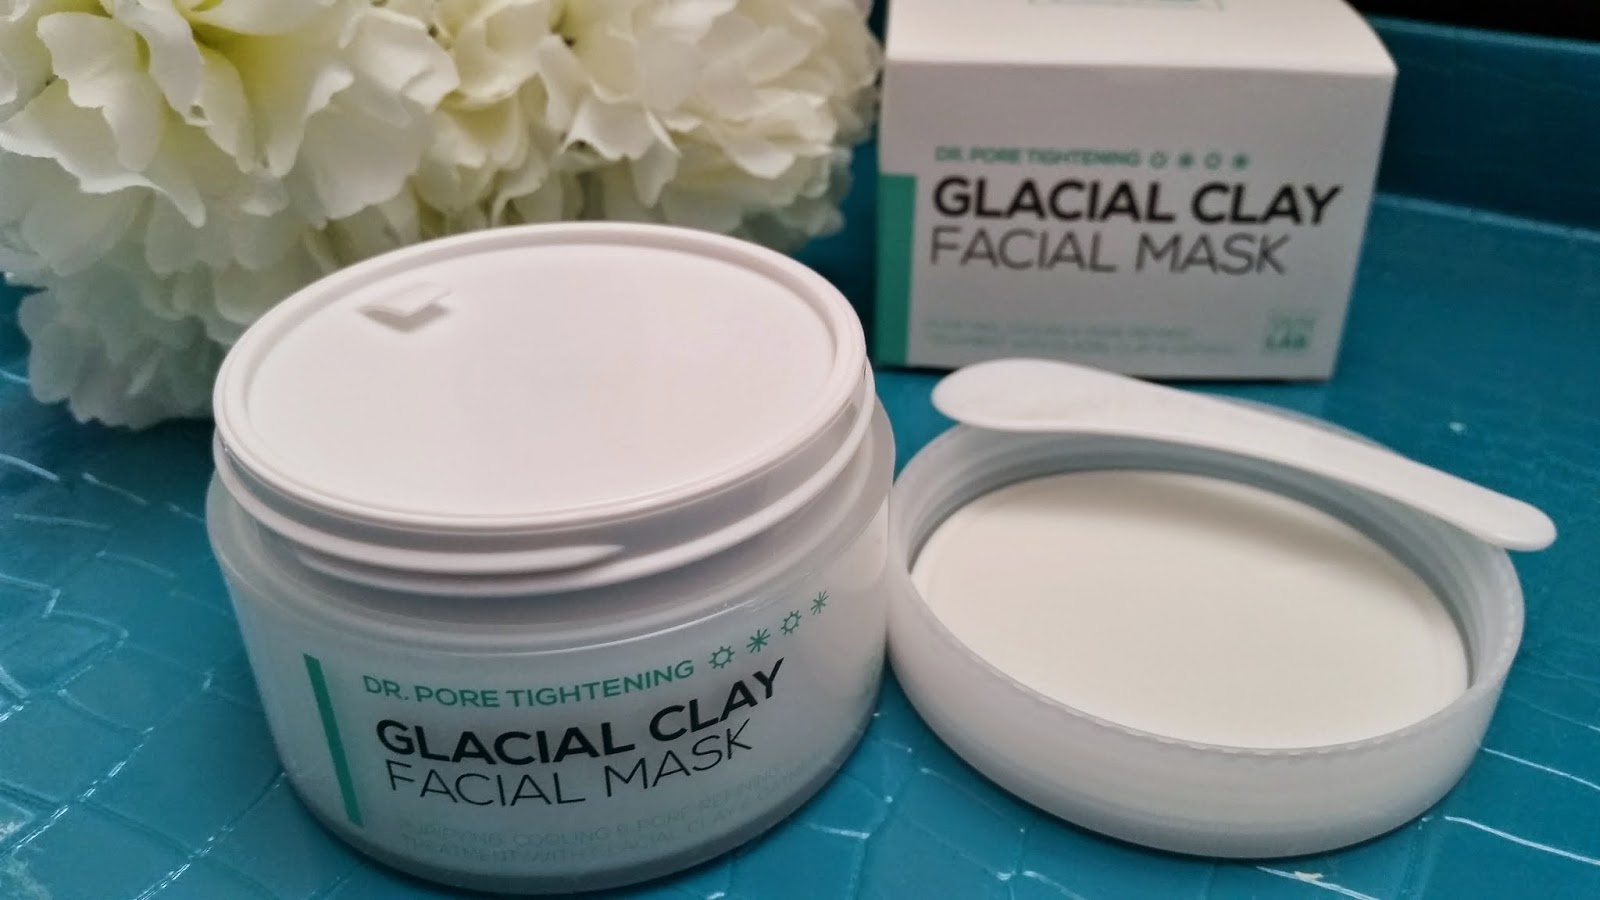 glacial clay packaging ans spatula